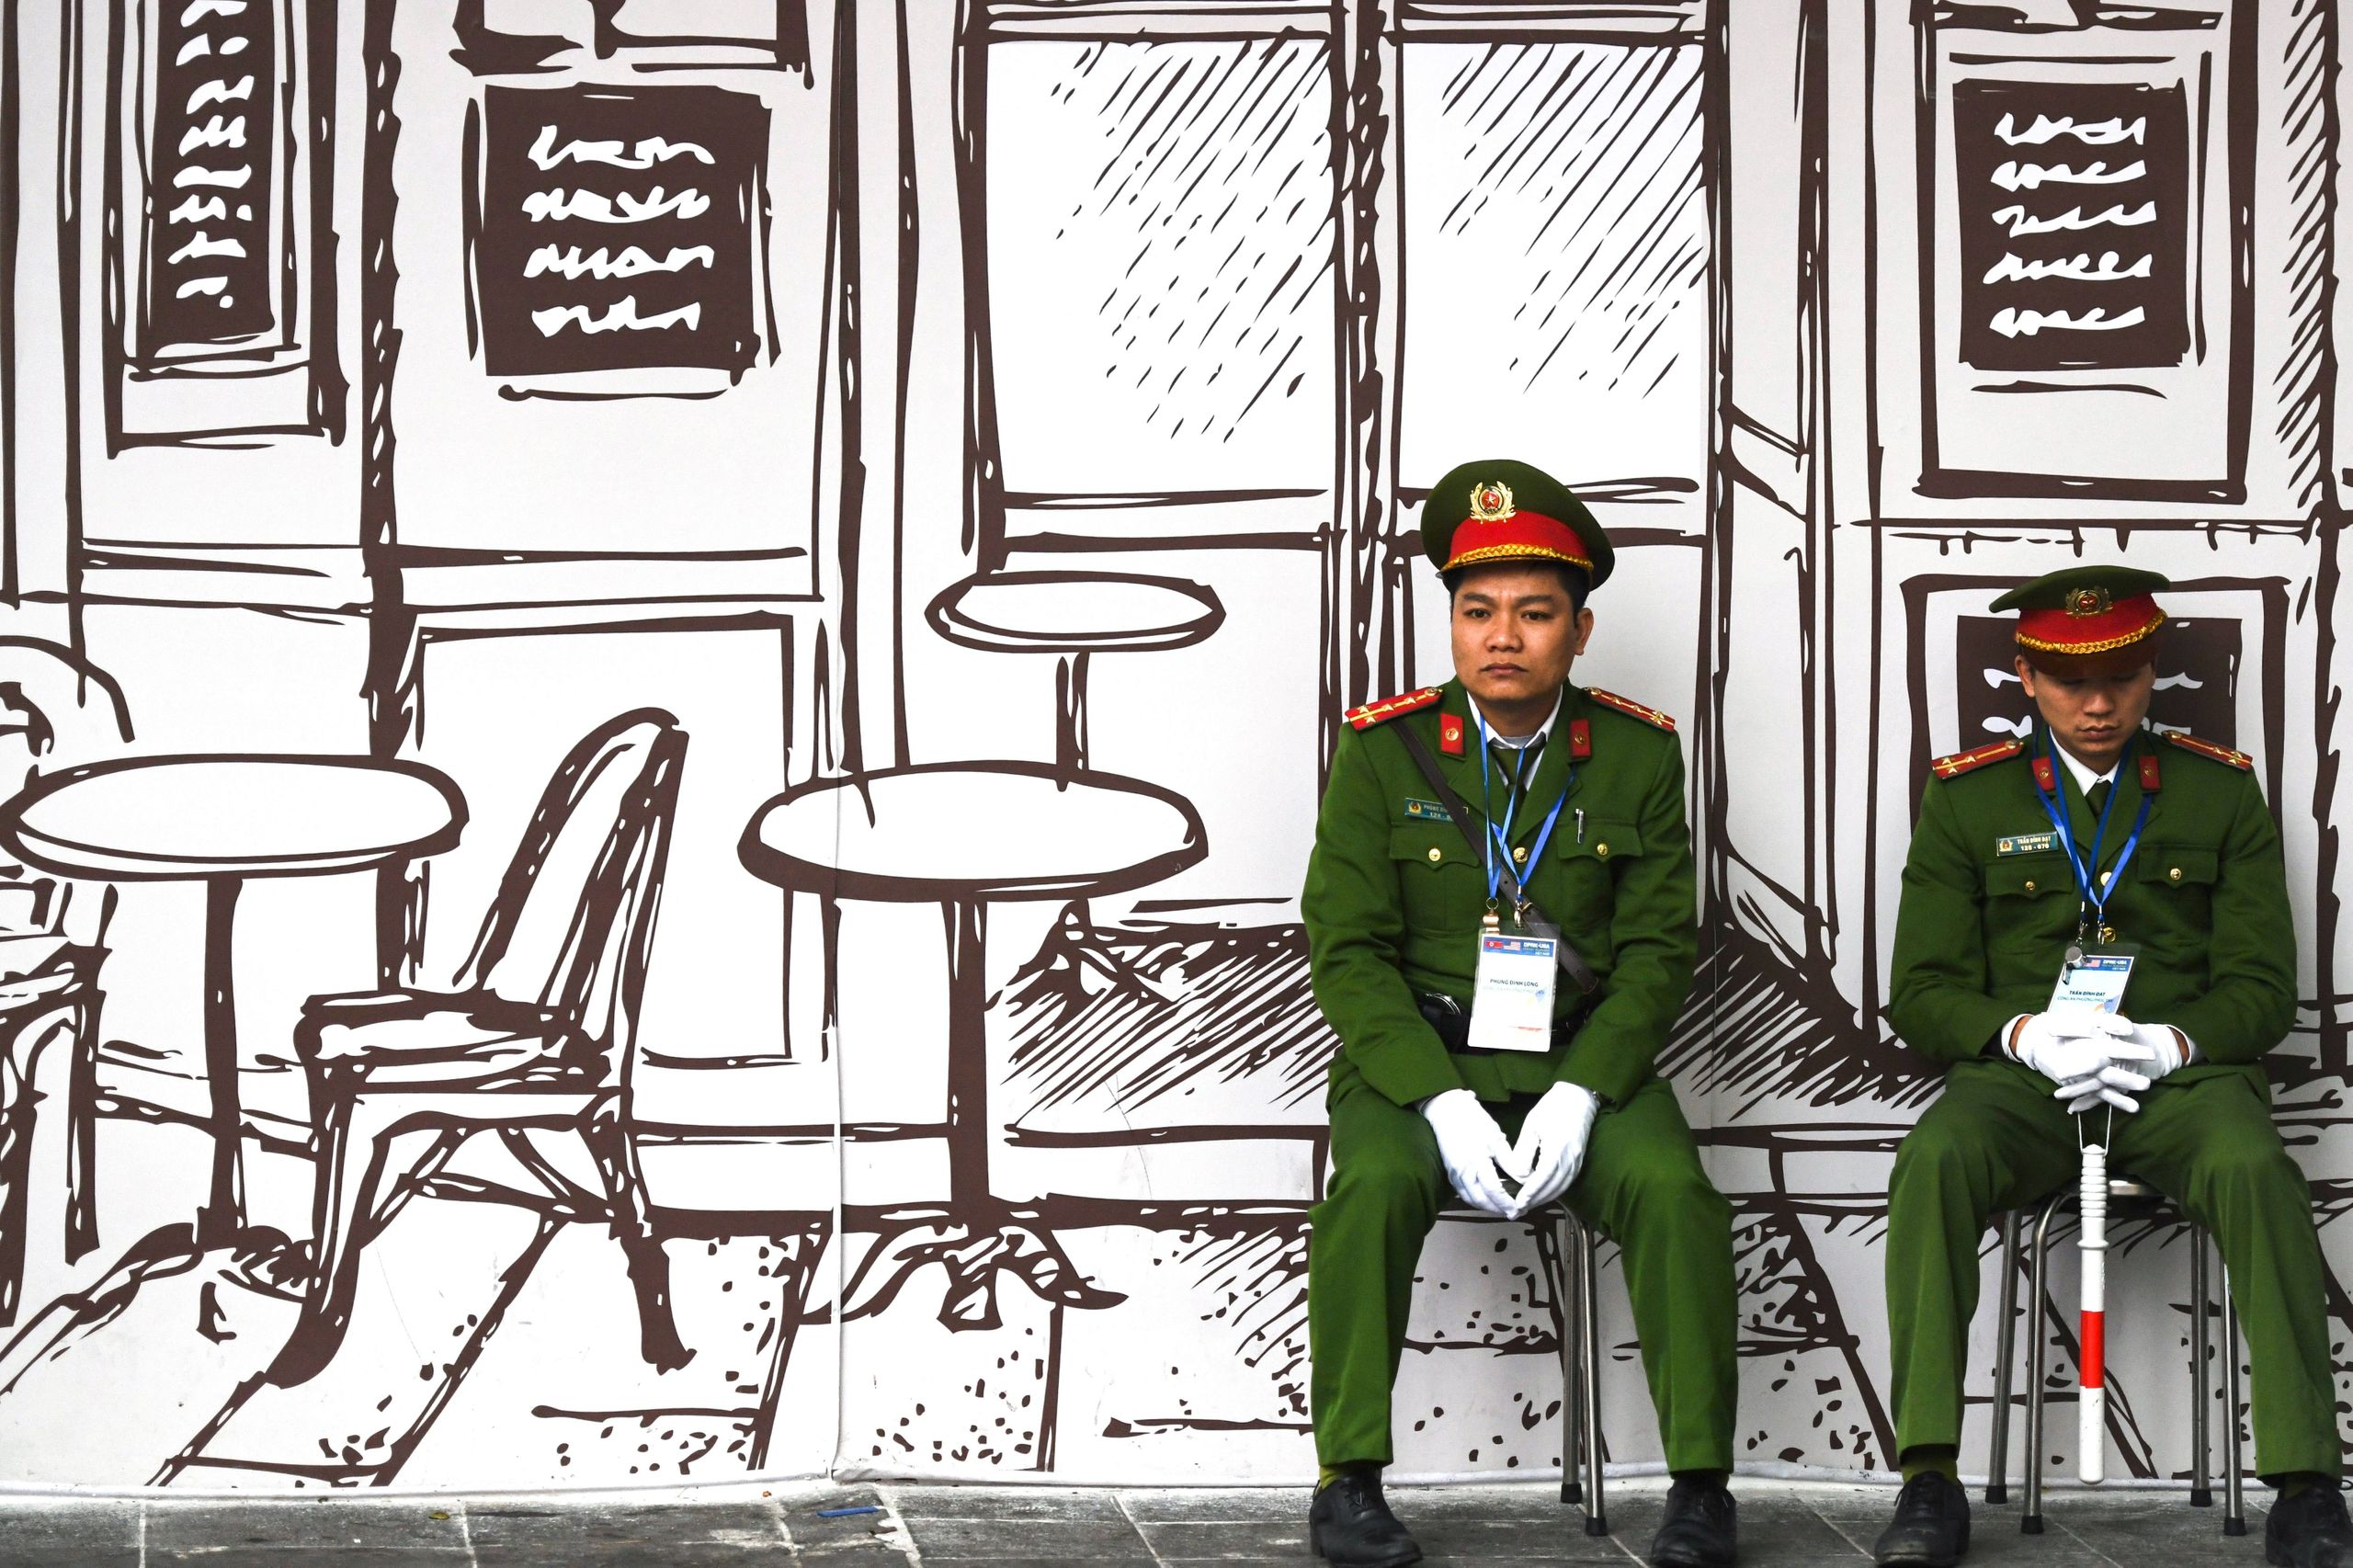 Vietnamese police sit on stools near the Sofitel Legend Metropole hotel in Hanoi on Feb. 27, 2019, ahead of the second U.S.-N